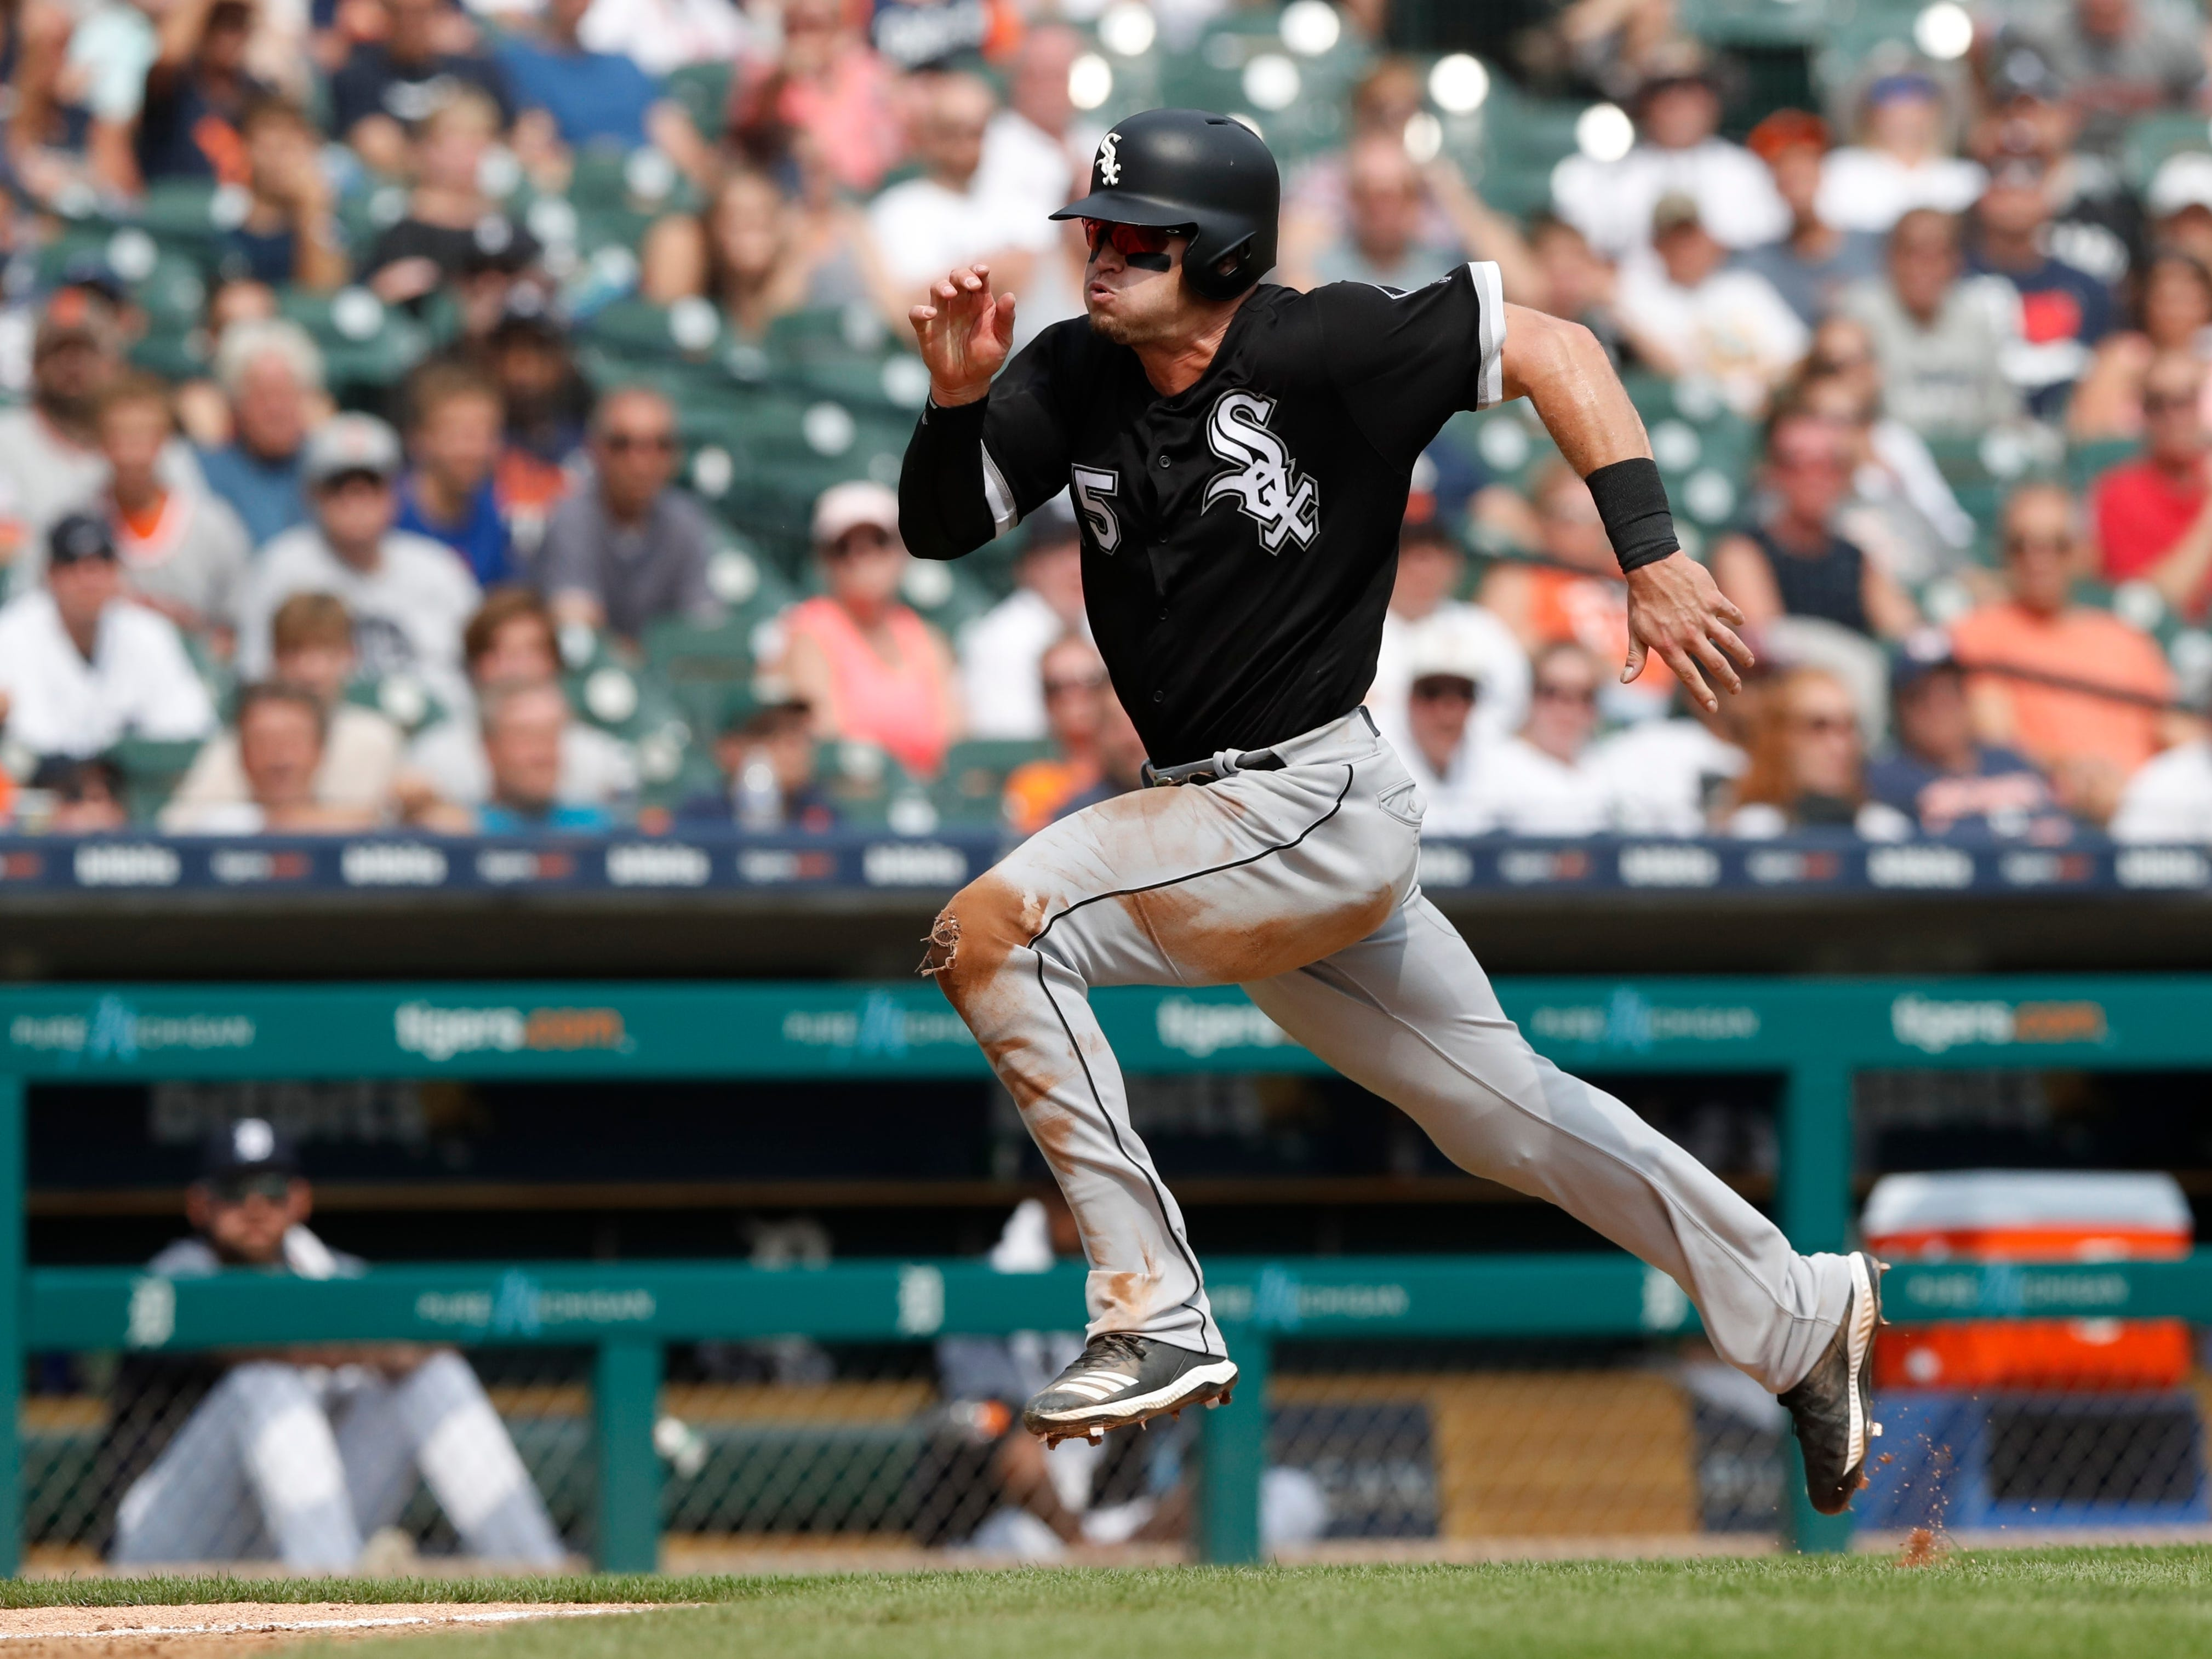 Chicago White Sox's Adam Engel runs towards home during the seventh inning.